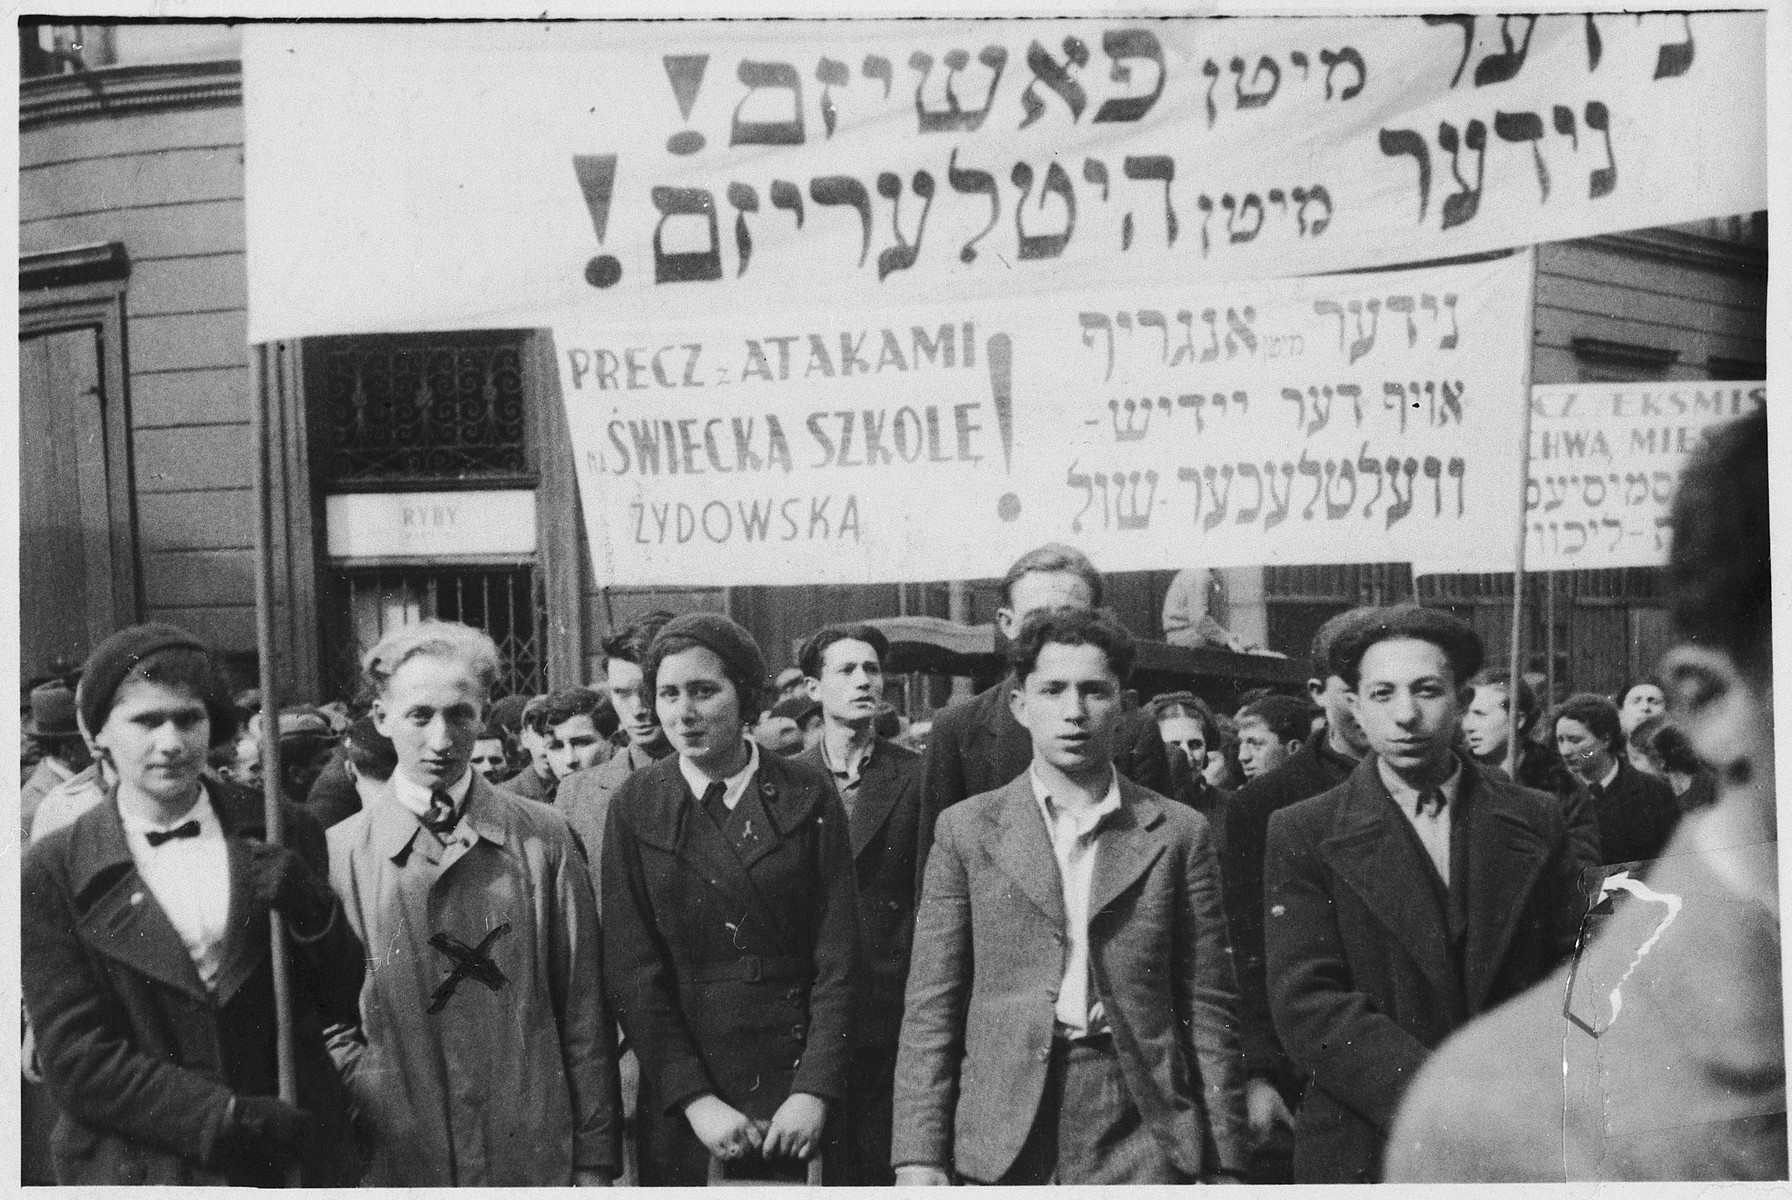 """Warsaw Jews demonstrate against Hitlerism, Fascism and attacks on Jewish schools.  The signs read """"Down with Fascism; Down with Hitlerism"""" and """"We denounce attacks on Jewish schools.""""   The Polish banner reads, """"Down with attacks on secular Jewish schools"""".  Yankel Federman is pictured second from the left.  The caption on the back of the photo reads, """"This card shows a demonstration that took place in Warsaw in 1937 against Fascism and Hitlerism.  I am standing under the banner about the struggle with Hitlerism and the Polish regime in its attacks on Jewish schools and the Yiddish language."""""""